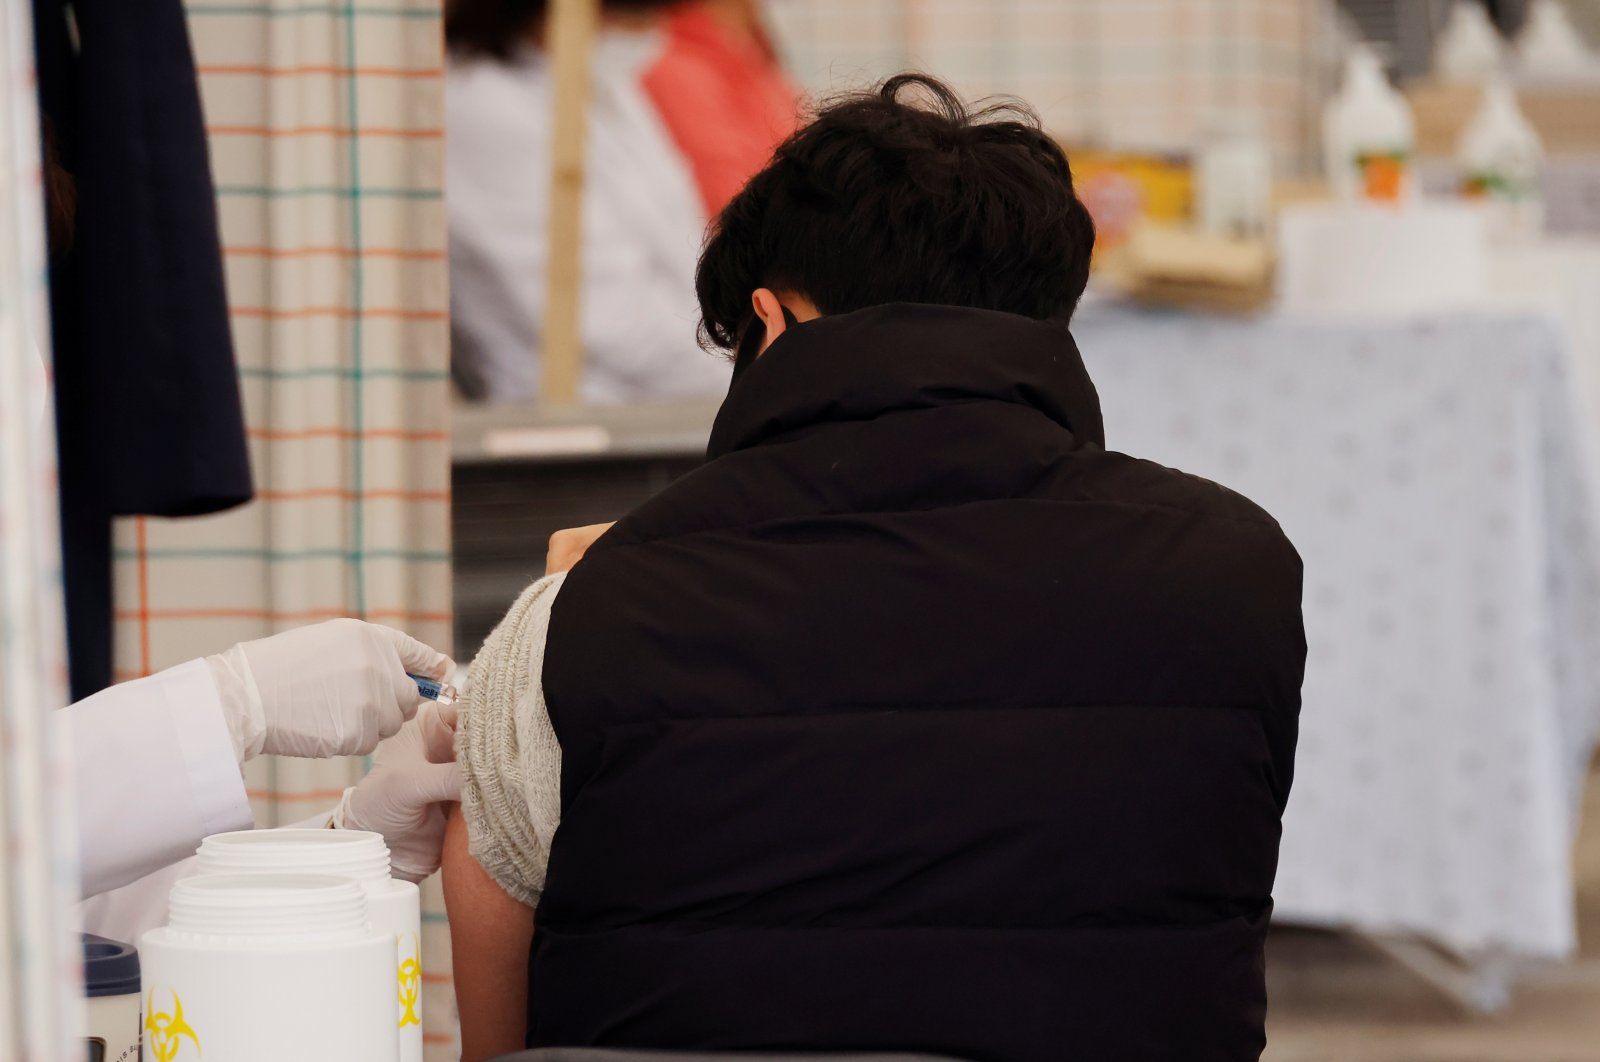 A man gets an influenza vaccine at a hospital in Seoul, South Korea, Oct. 21, 2020. (Reuters Photo)